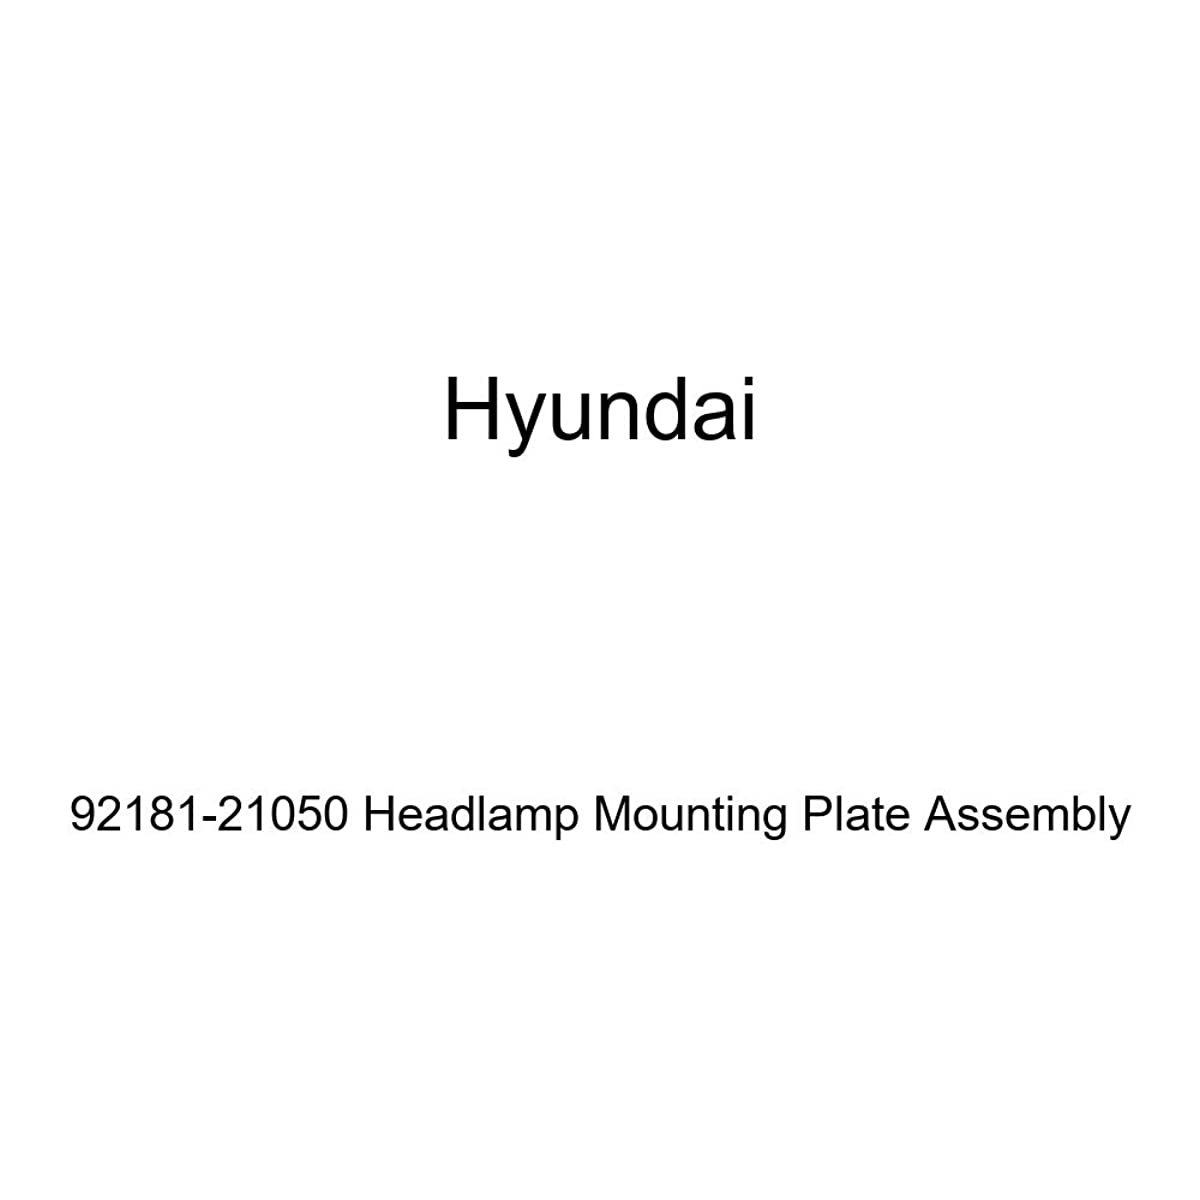 Genuine Hyundai 92181-21050 Headlamp Mounting Plate Assembly